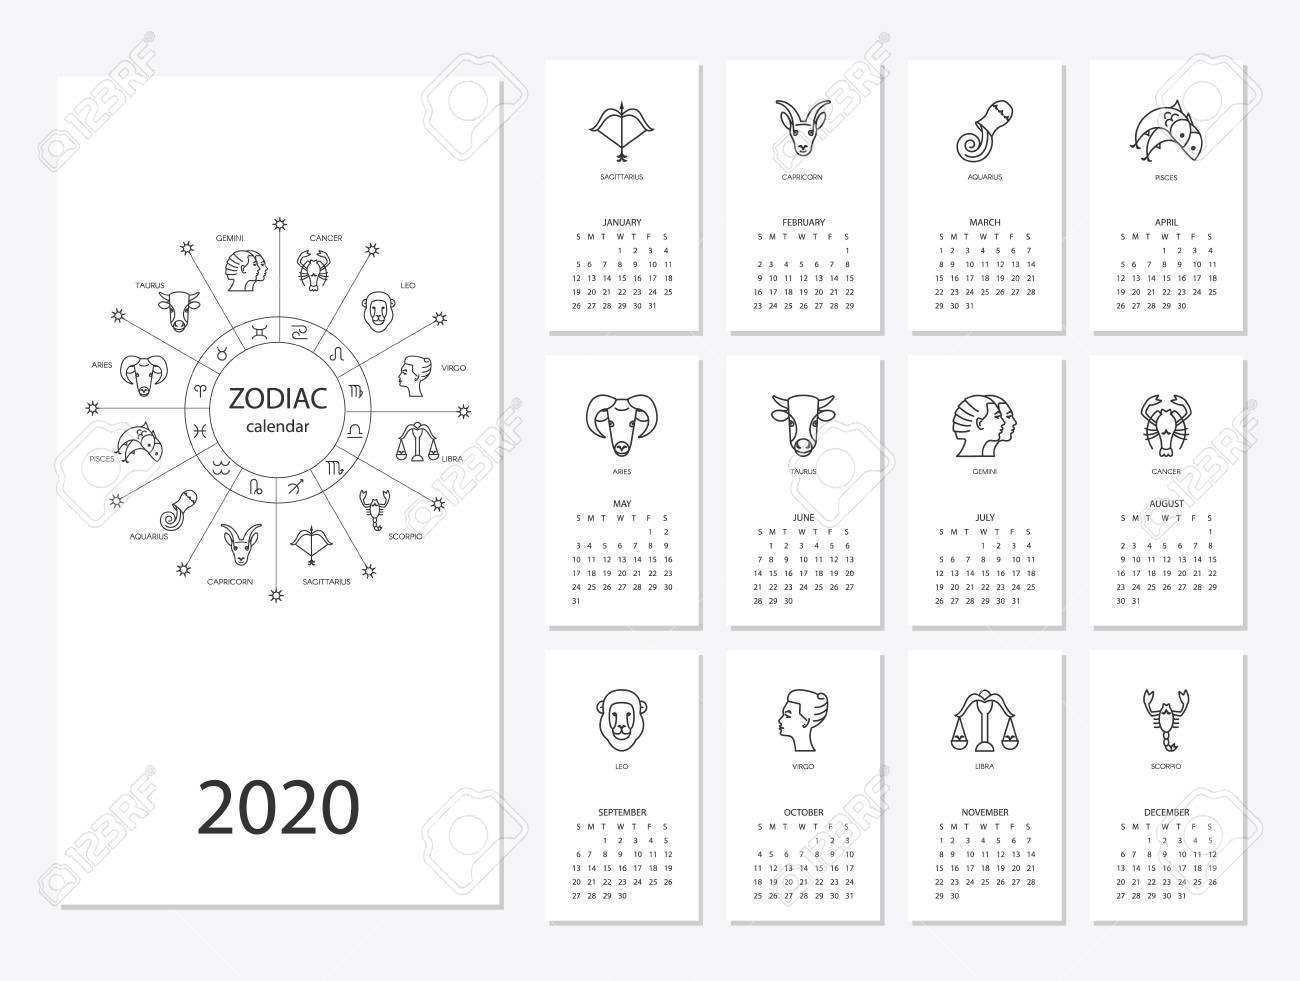 Calendar 2020 With Horoscope Signs Zodiac Symbols Set, Flat Colored..